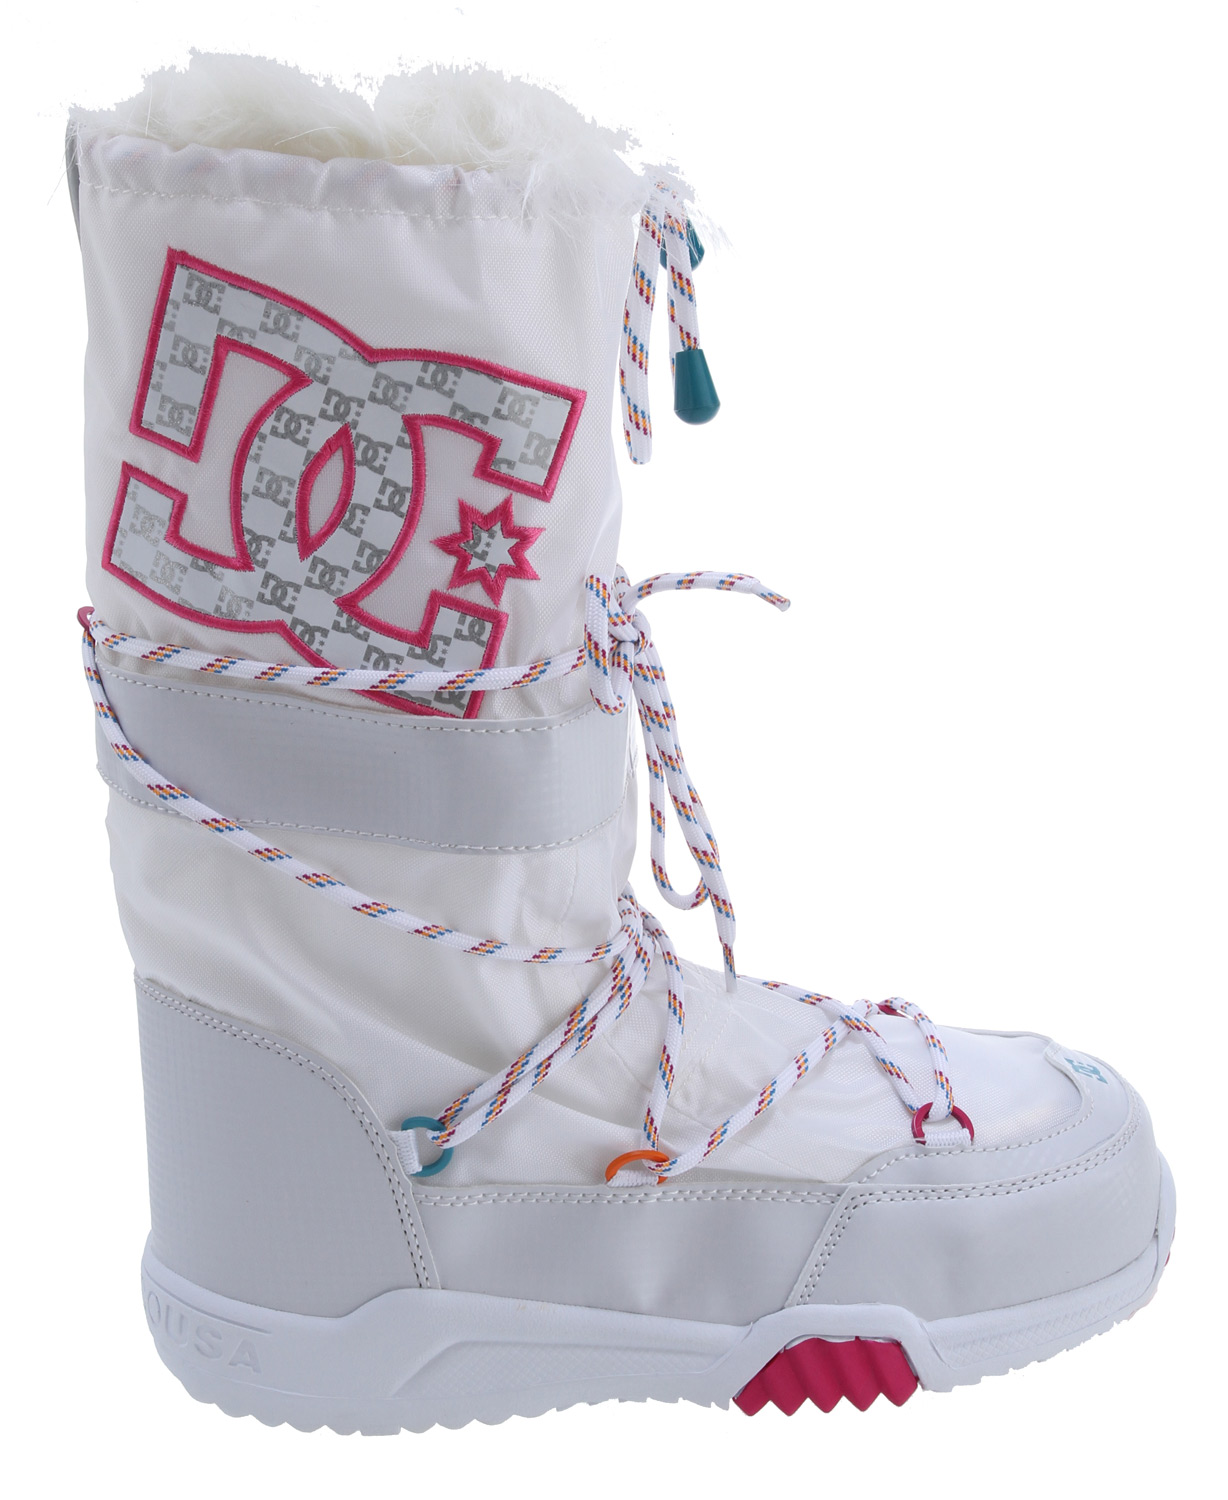 "Snowboard When the party moves back to the chalet, it's time for the Chalet SE 2.0, a knee-high nylon boot with easy entry and a faux fur top-collar. The drawstring lacing features custom accents, and DC's snowboard pill pattern graces the cold weather rubber bottom.Key Features of the DC Chalet 2.0 SE Boots: Nylon Knee Hi Boot Upper Easy Entry Boot Faux Fur Top Collar Drawstring Accents Snowboard ""Pill Pattern"" Cold Weather Rubber Bottom - $66.95"